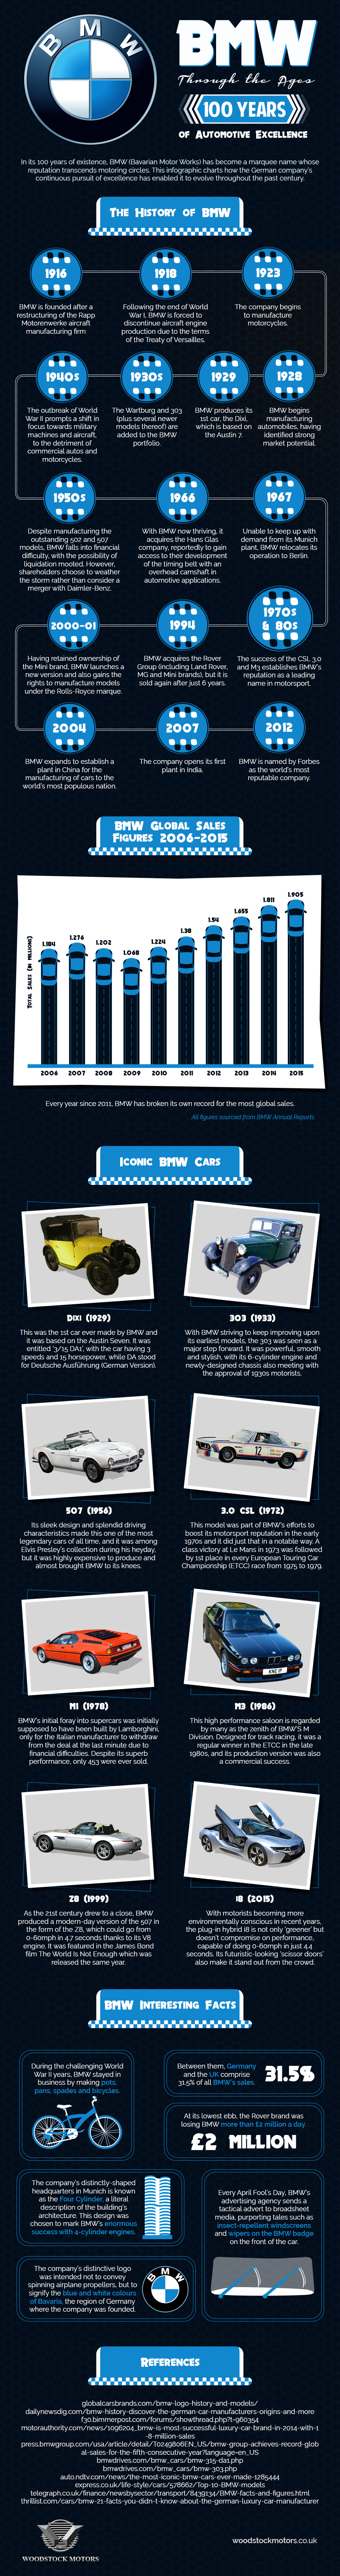 BMW Through the Ages: 100 Years of Automotive Excellence